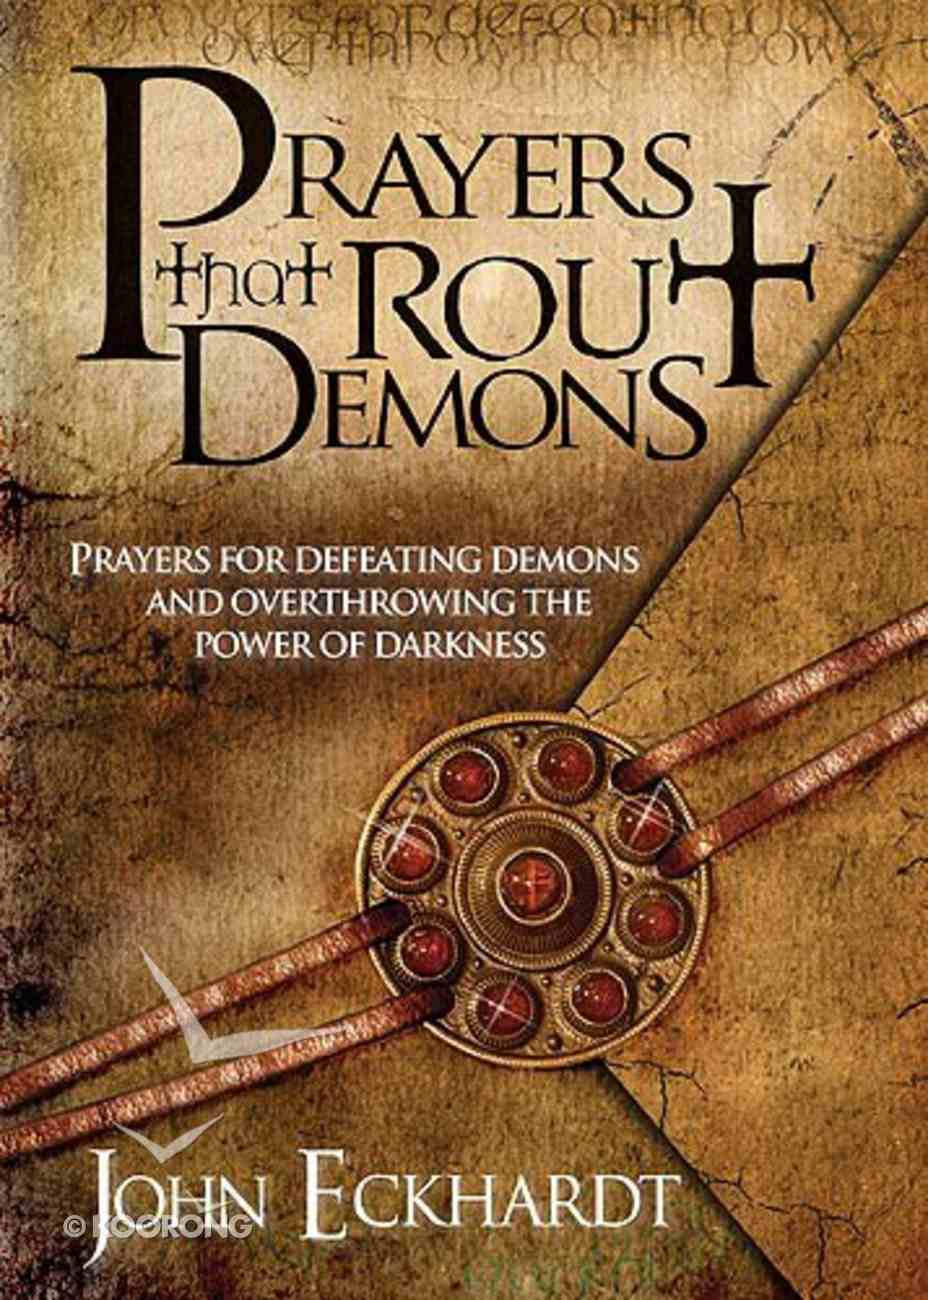 Prayers That Rout Demons Paperback